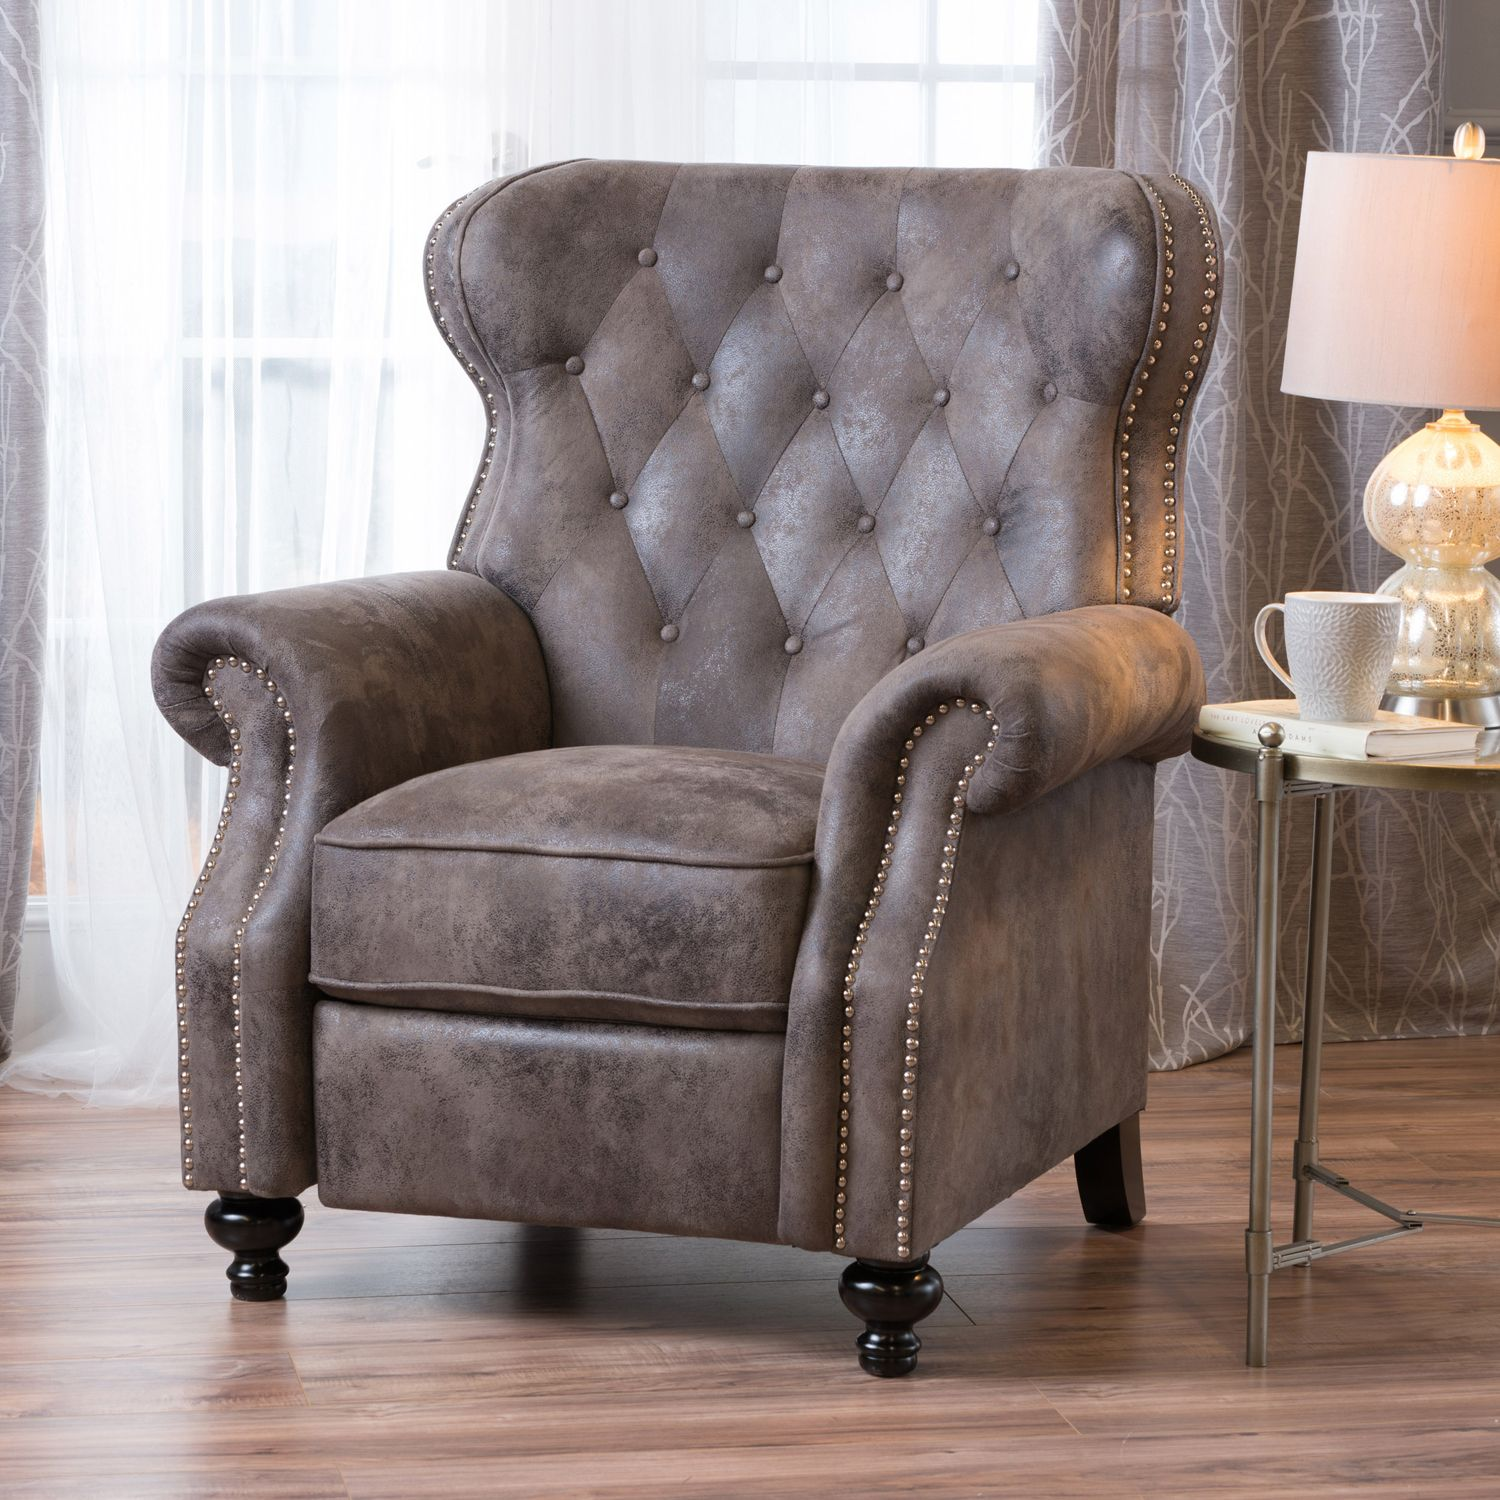 Warm Stone Tufted Microfiber Recliner | Pier 1